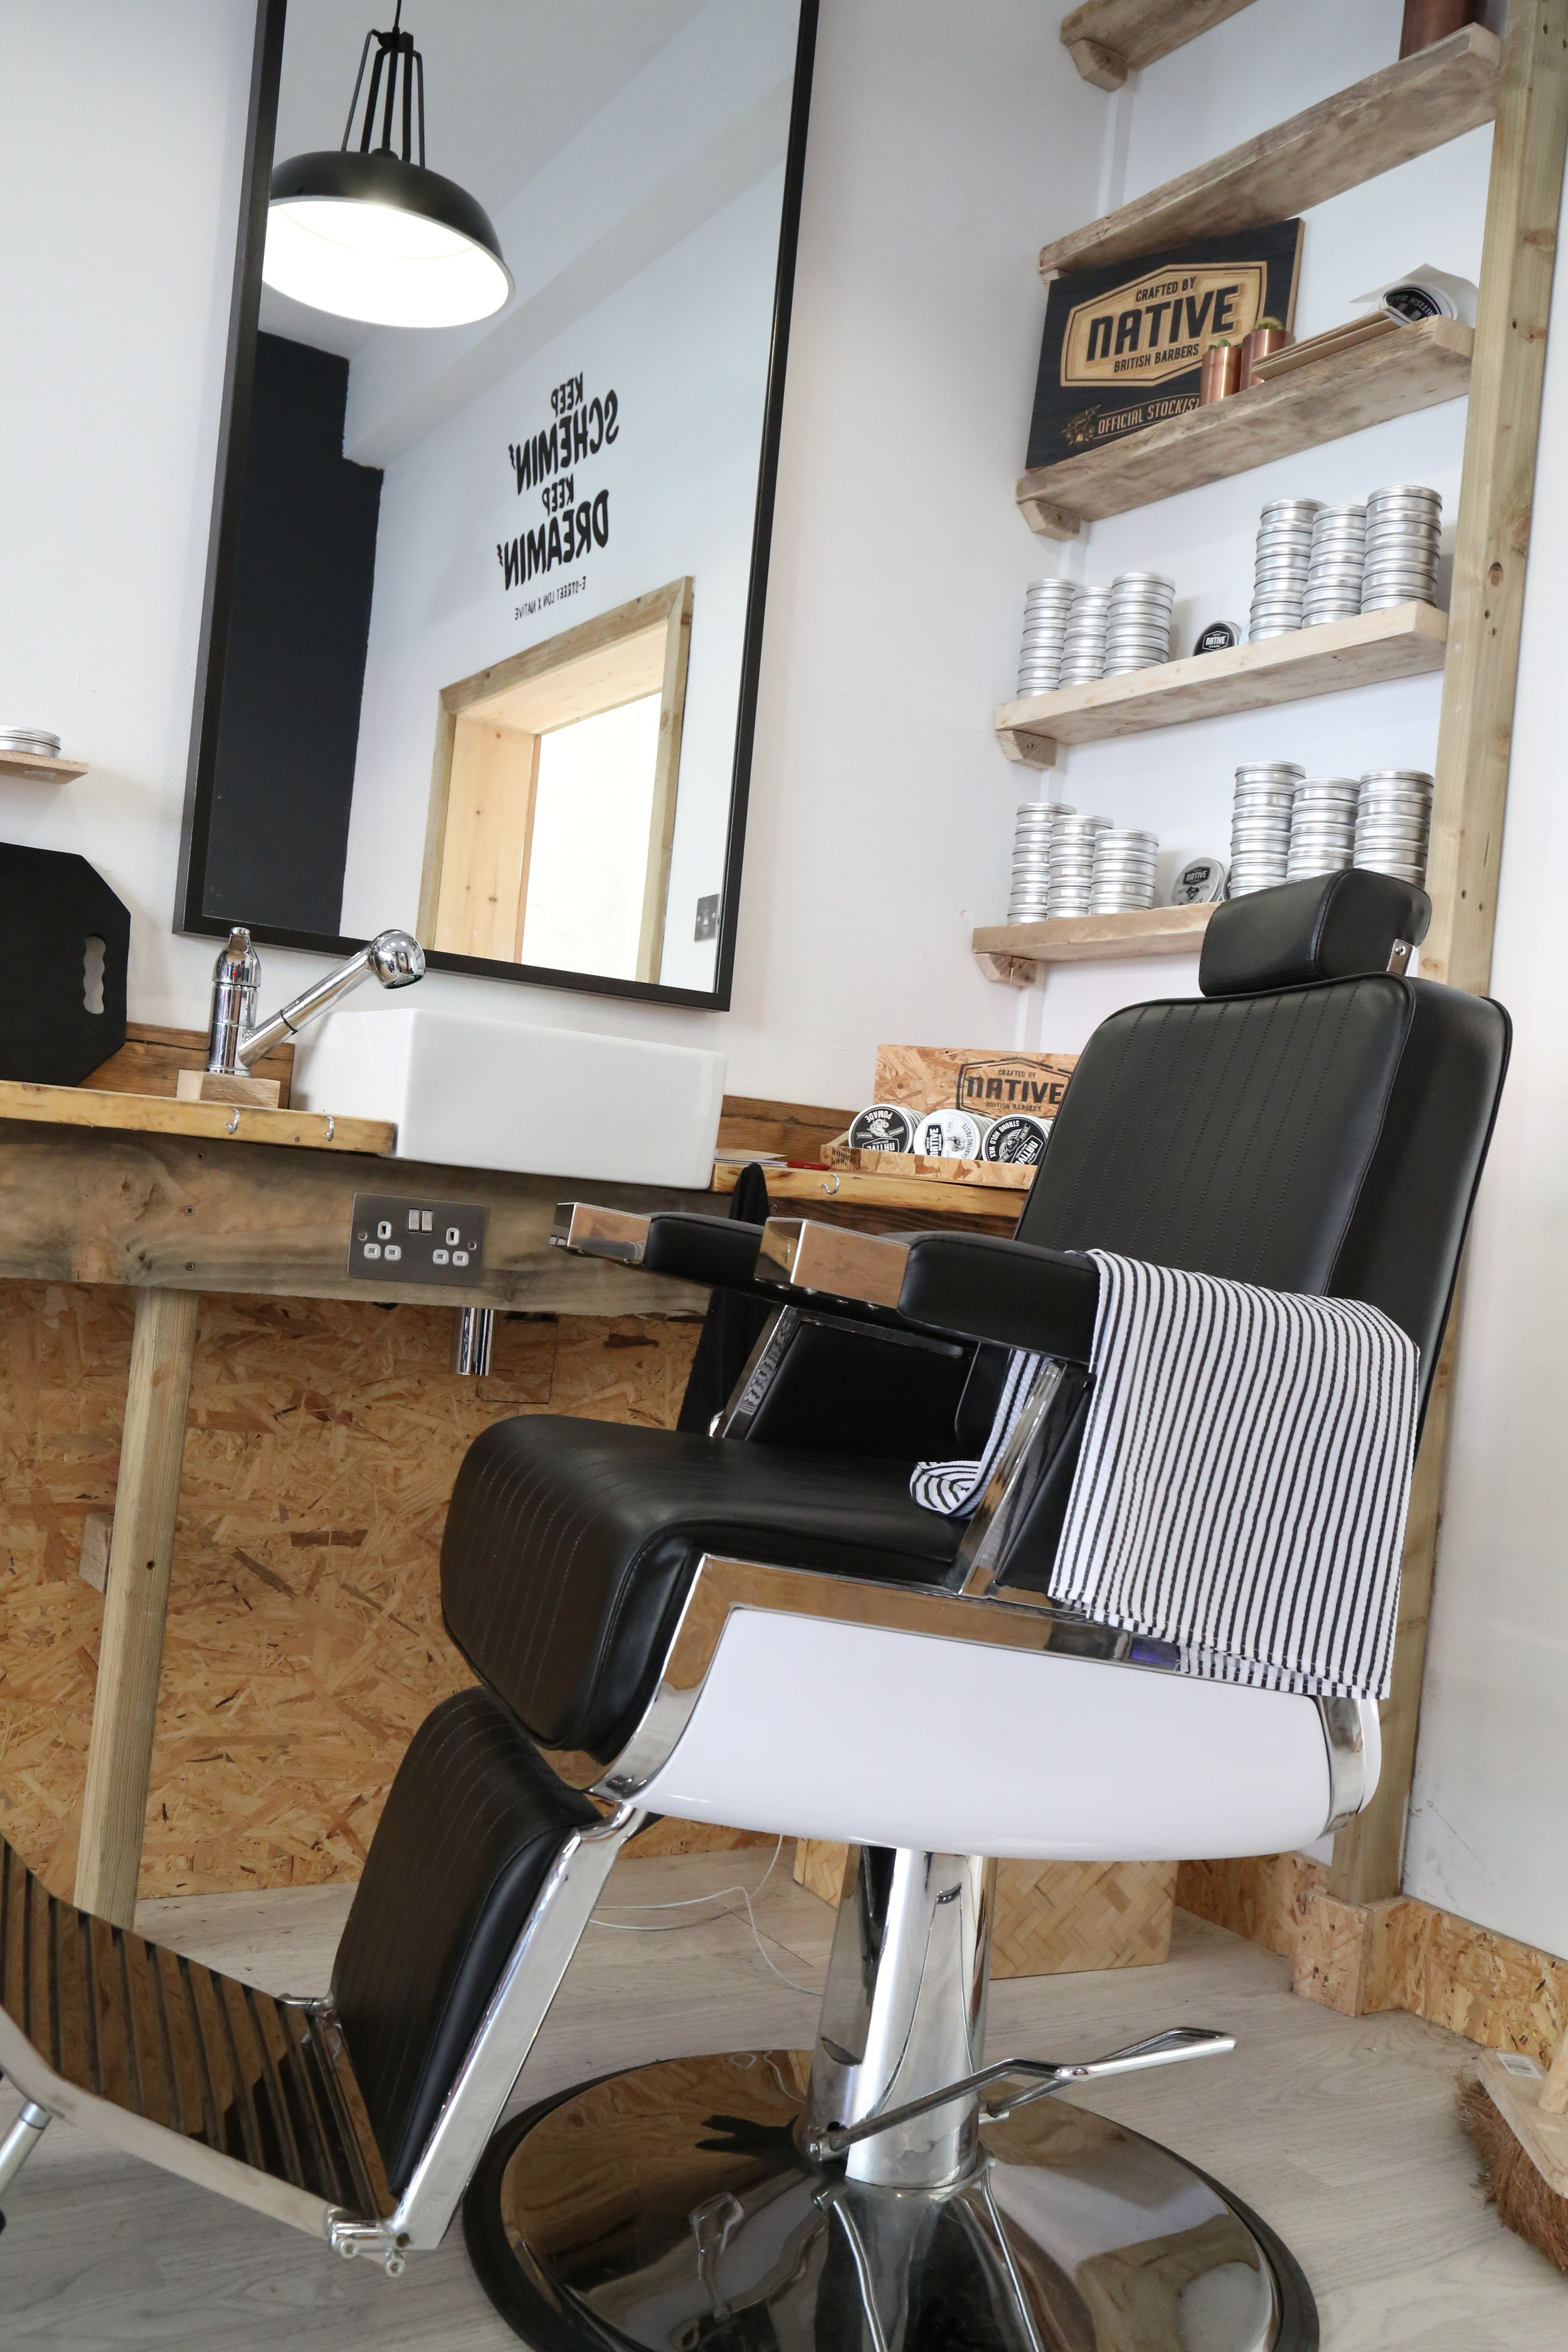 Barber Chair at E-Street Barbers Clapton Hackney